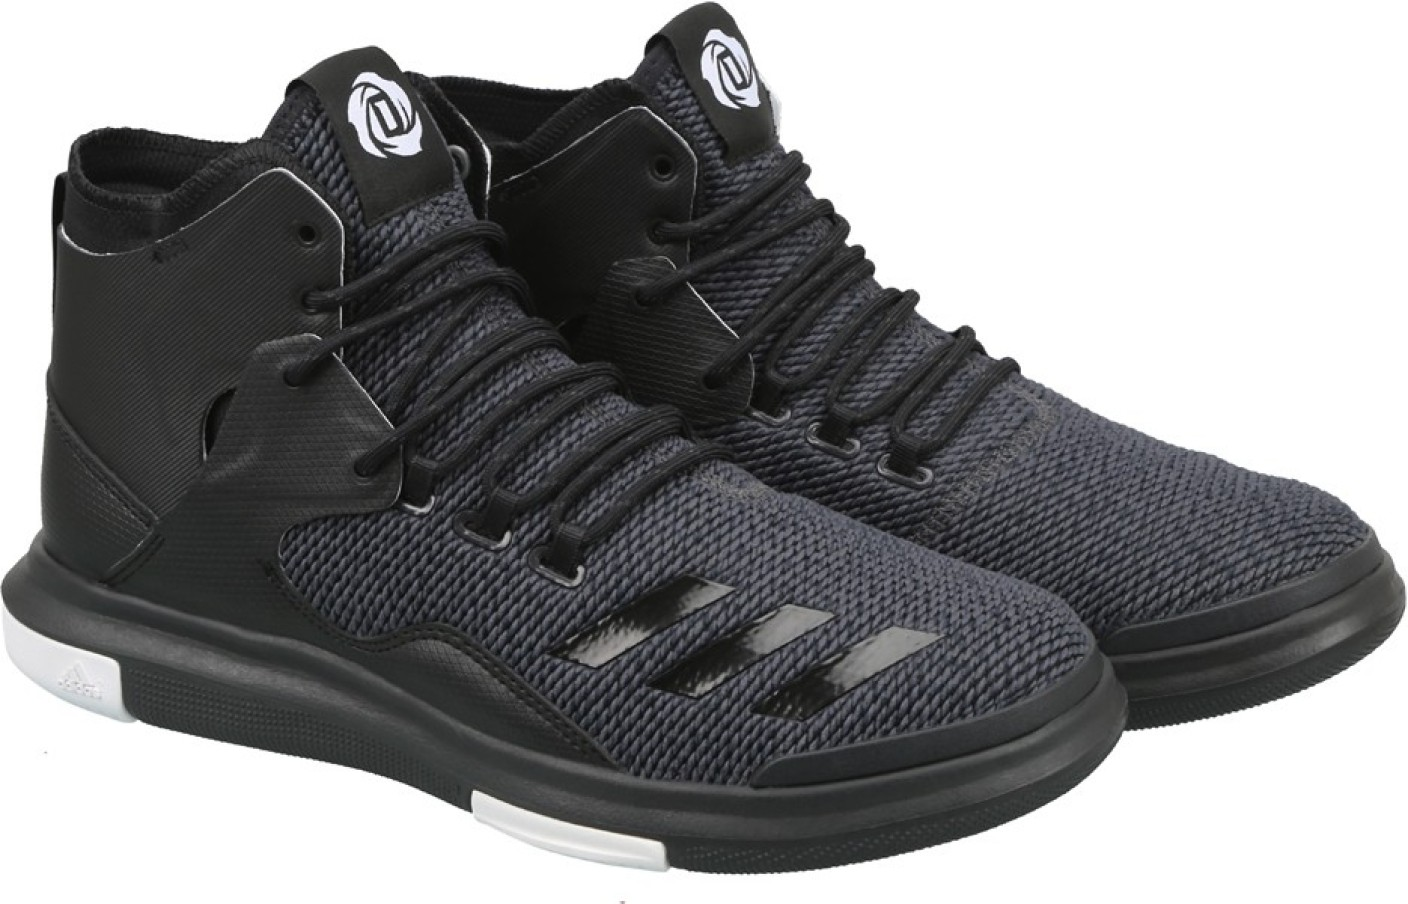 ADIDAS D ROSE LAKESHORE ULTRA Basketball Shoes For Men ...